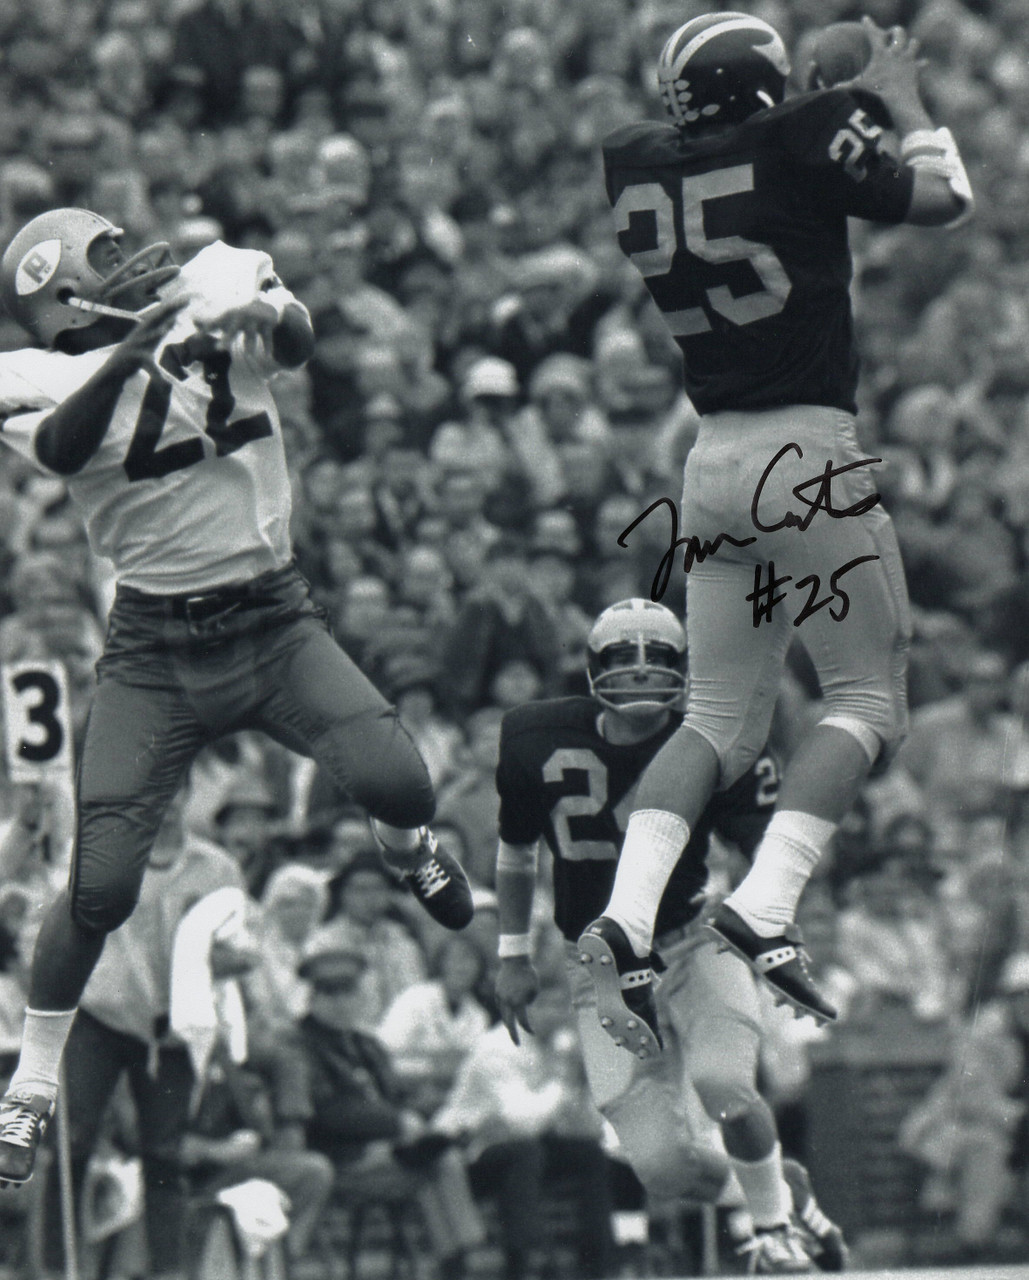 Tom Curtis Michigan Wolverines 8-1 8x10 Autographed Photo - Certified Authentic